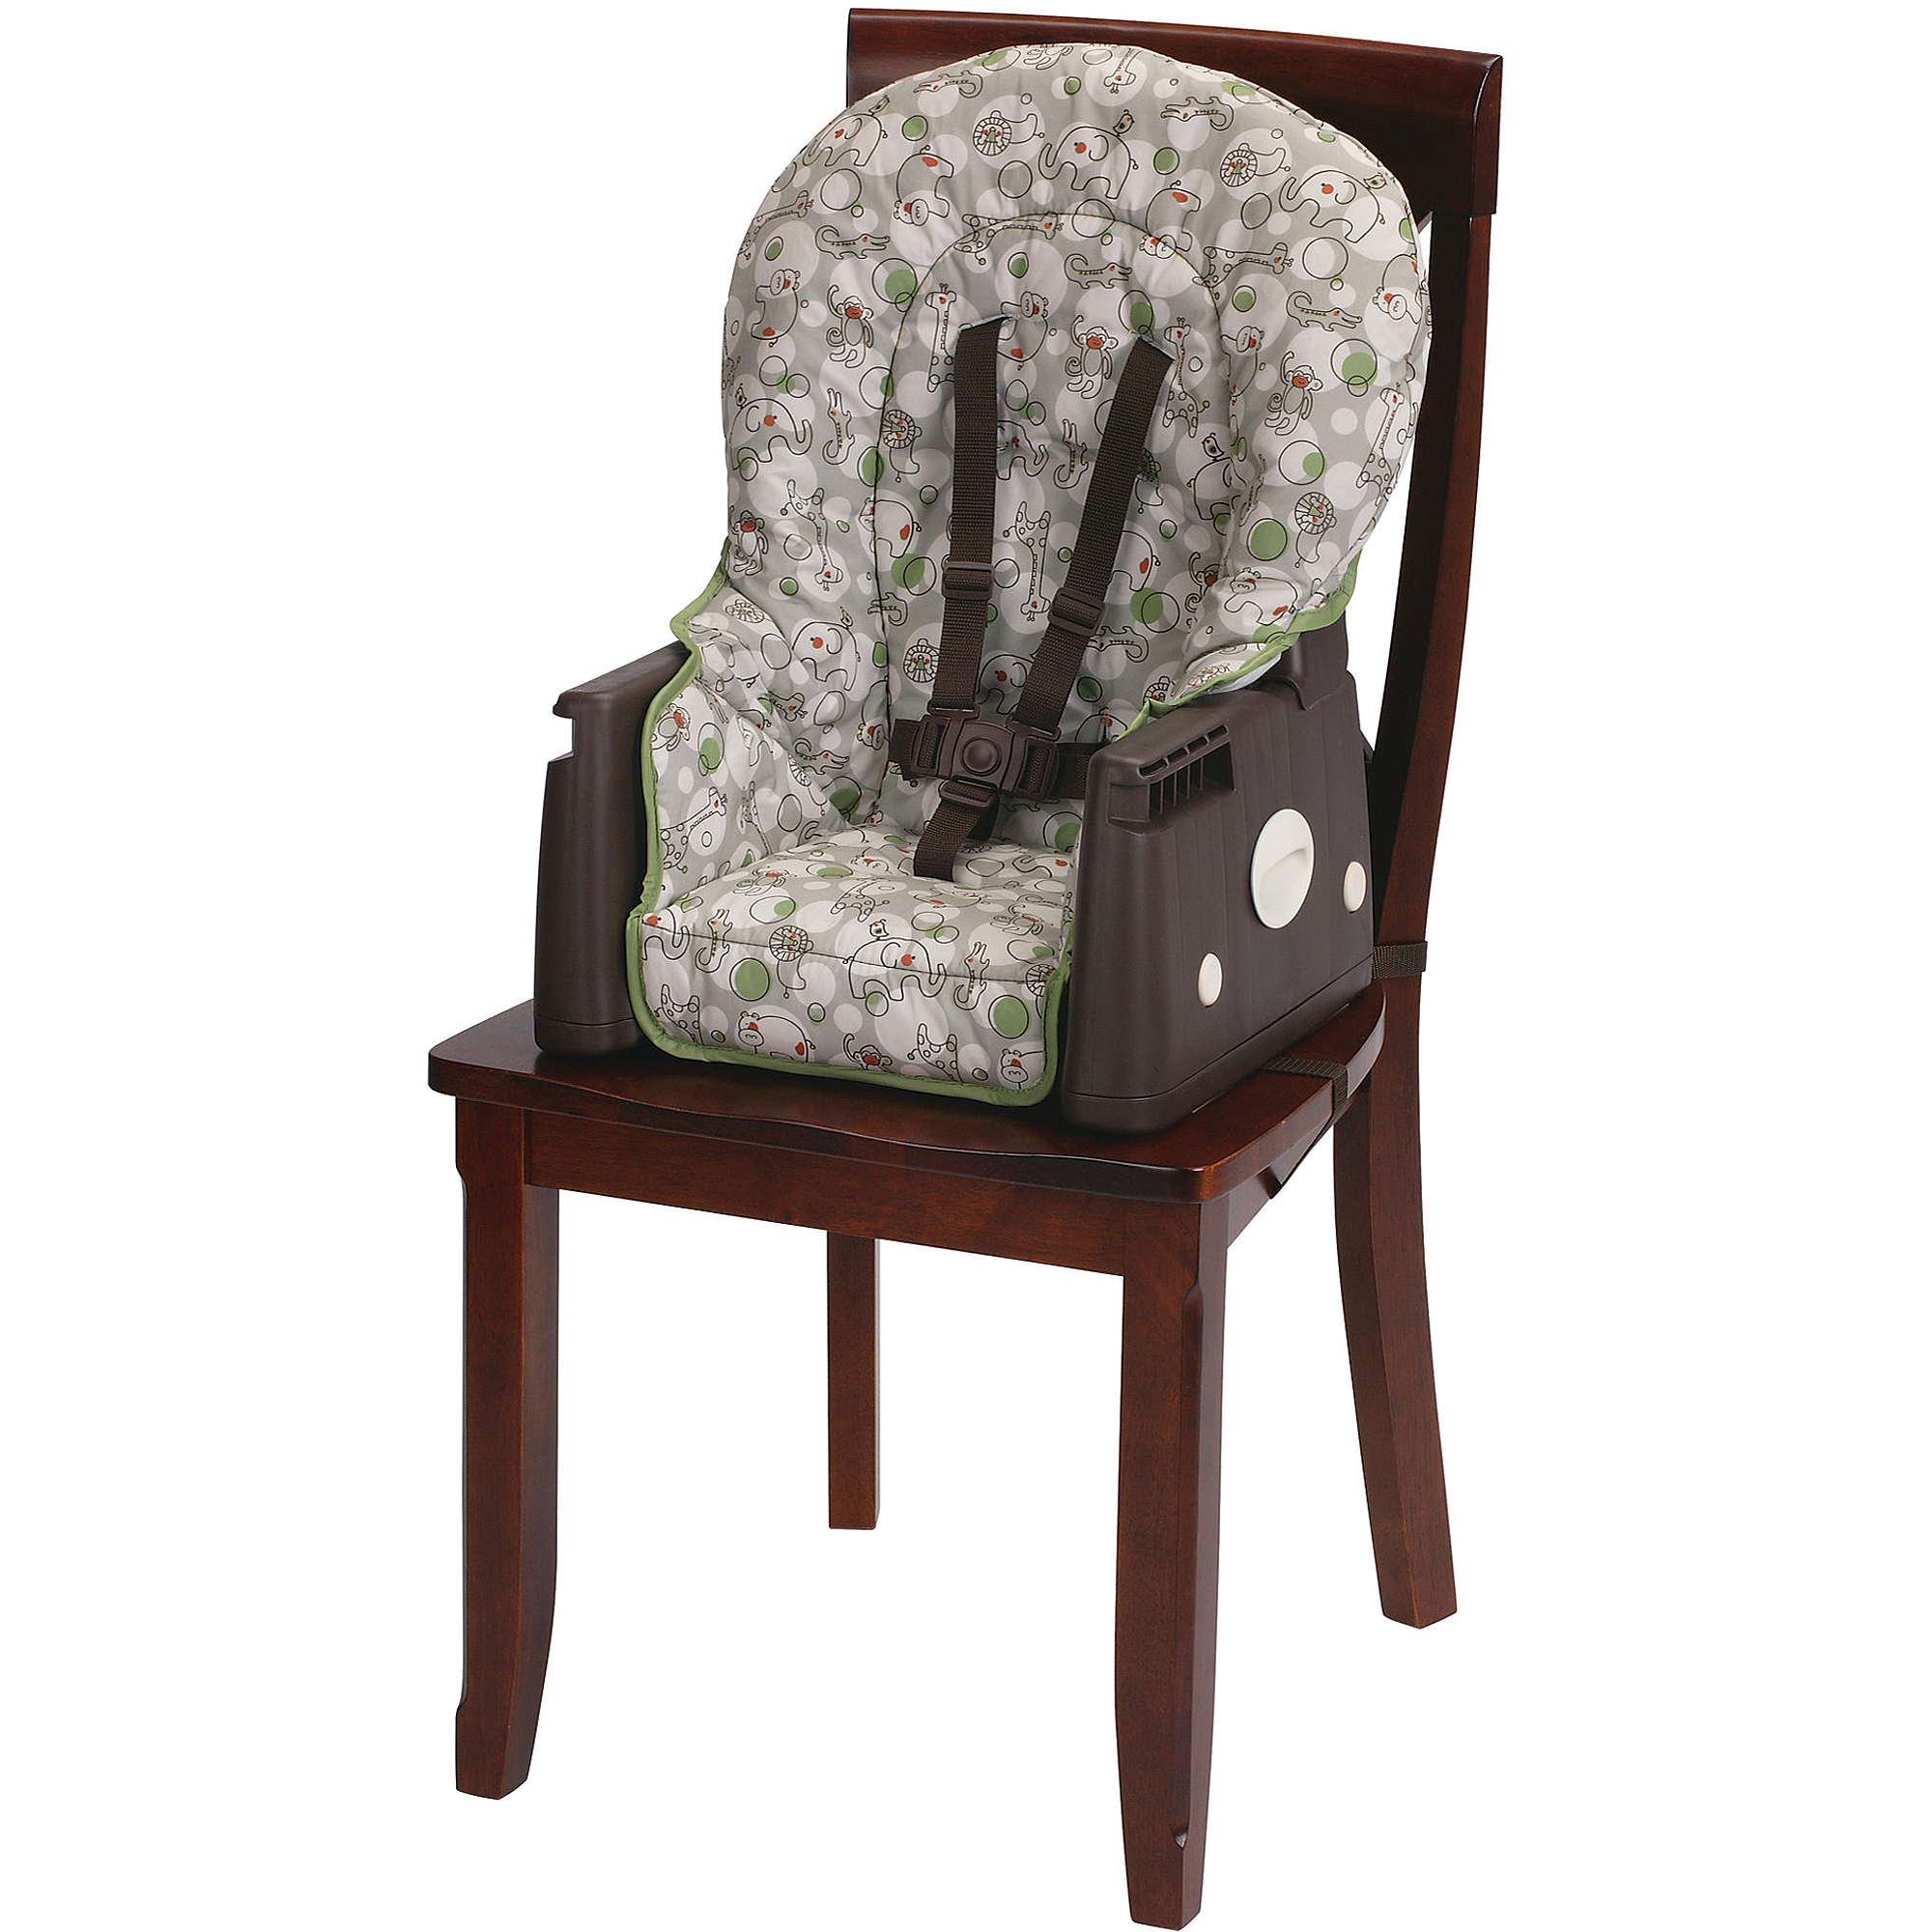 portable high chair target white rocking chairs for sale graco simpleswitch 2 in 1 zuba